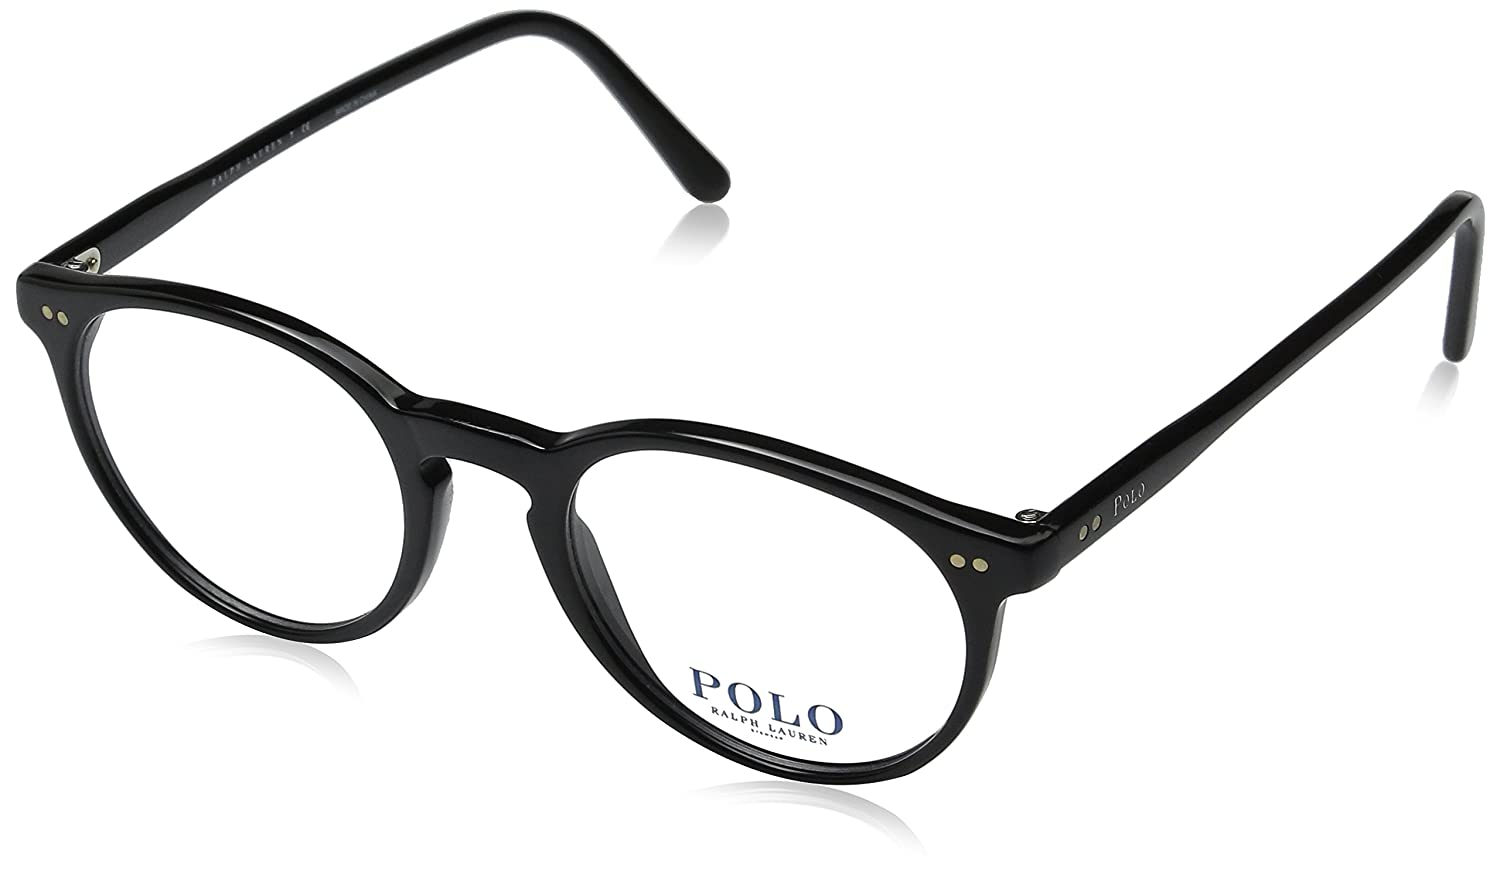 56f522a61f Amazon.com  Polo Men s PH2083 Eyeglasses Shiny Black 48mm  Shoes